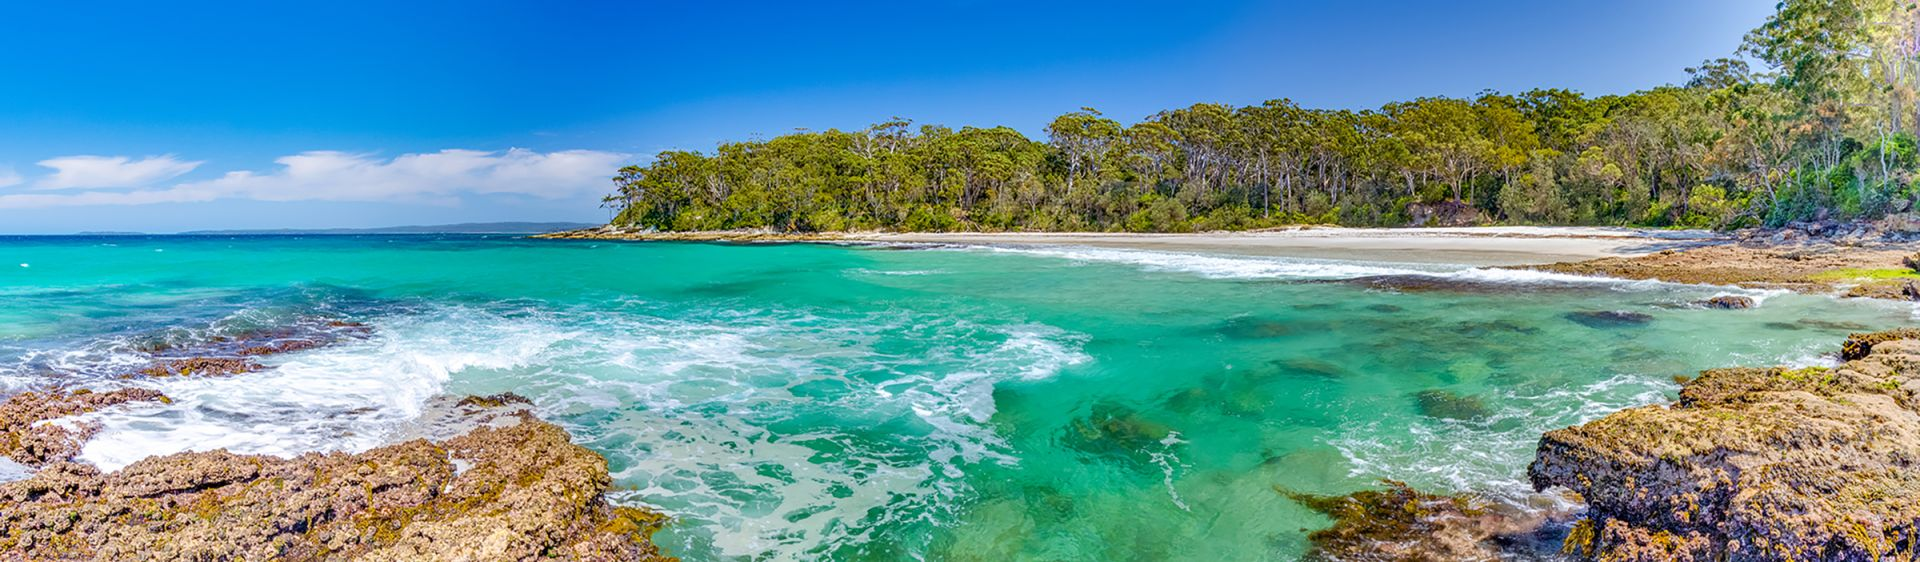 Blenheim Beach in Vincentia on the NSW South Coast